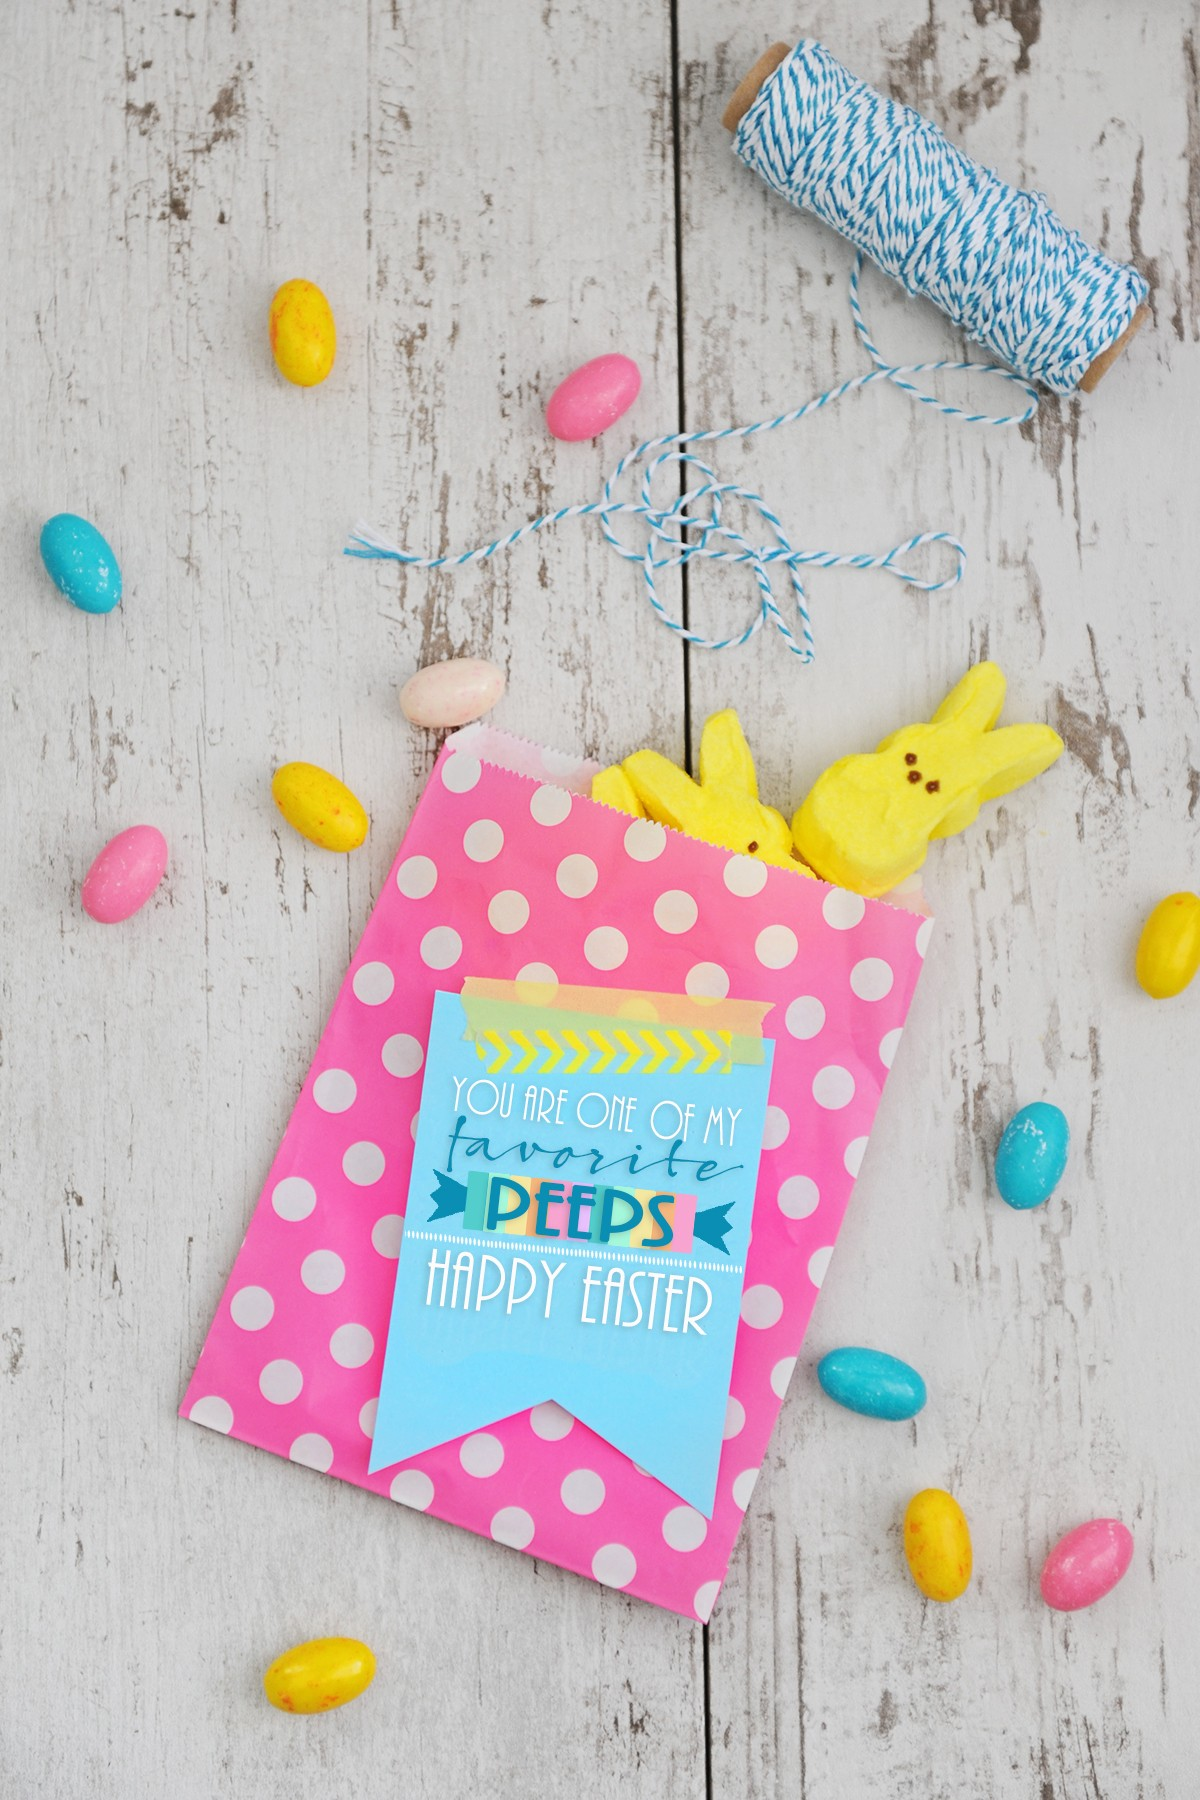 Cute And Easy To Make Easter Peeps Favors And Free Printable Pink Peppermint Design